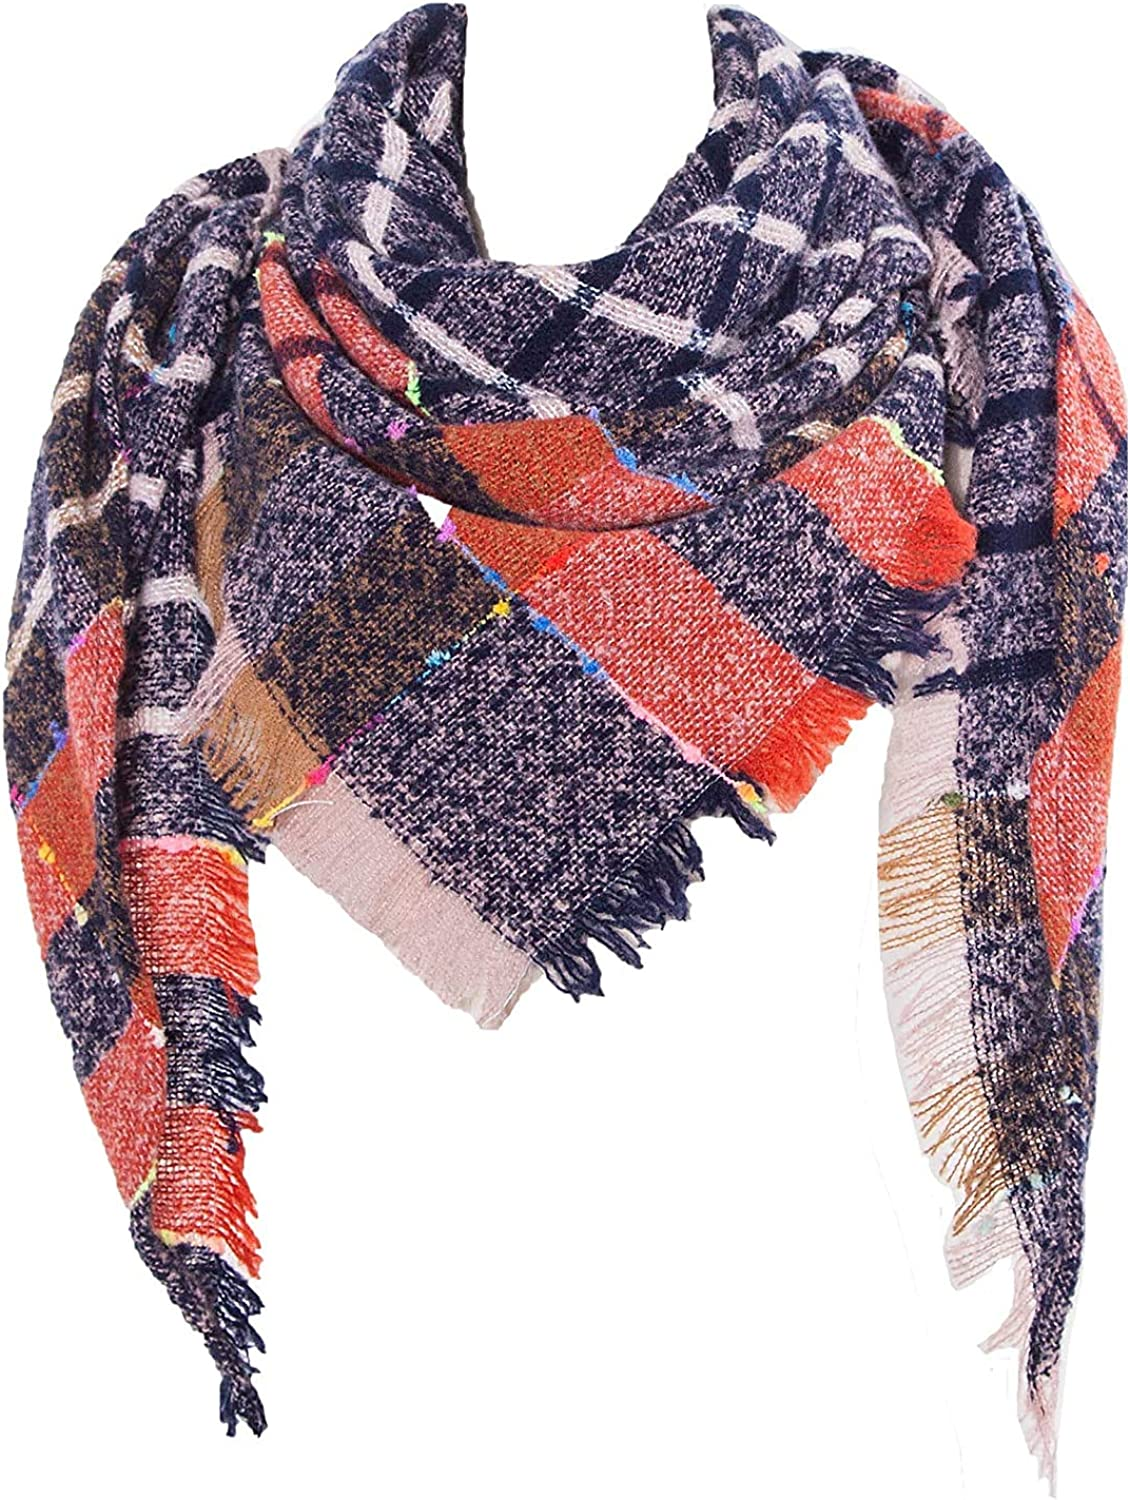 Neck Warmer Women's Scarf Cashmere Scarf MKLP Tassel Scarf Winter Ladies Scarf Large Warm Shawl Plaid Scarf Large Shawl Keep Warm and Prevent Cold Fringed